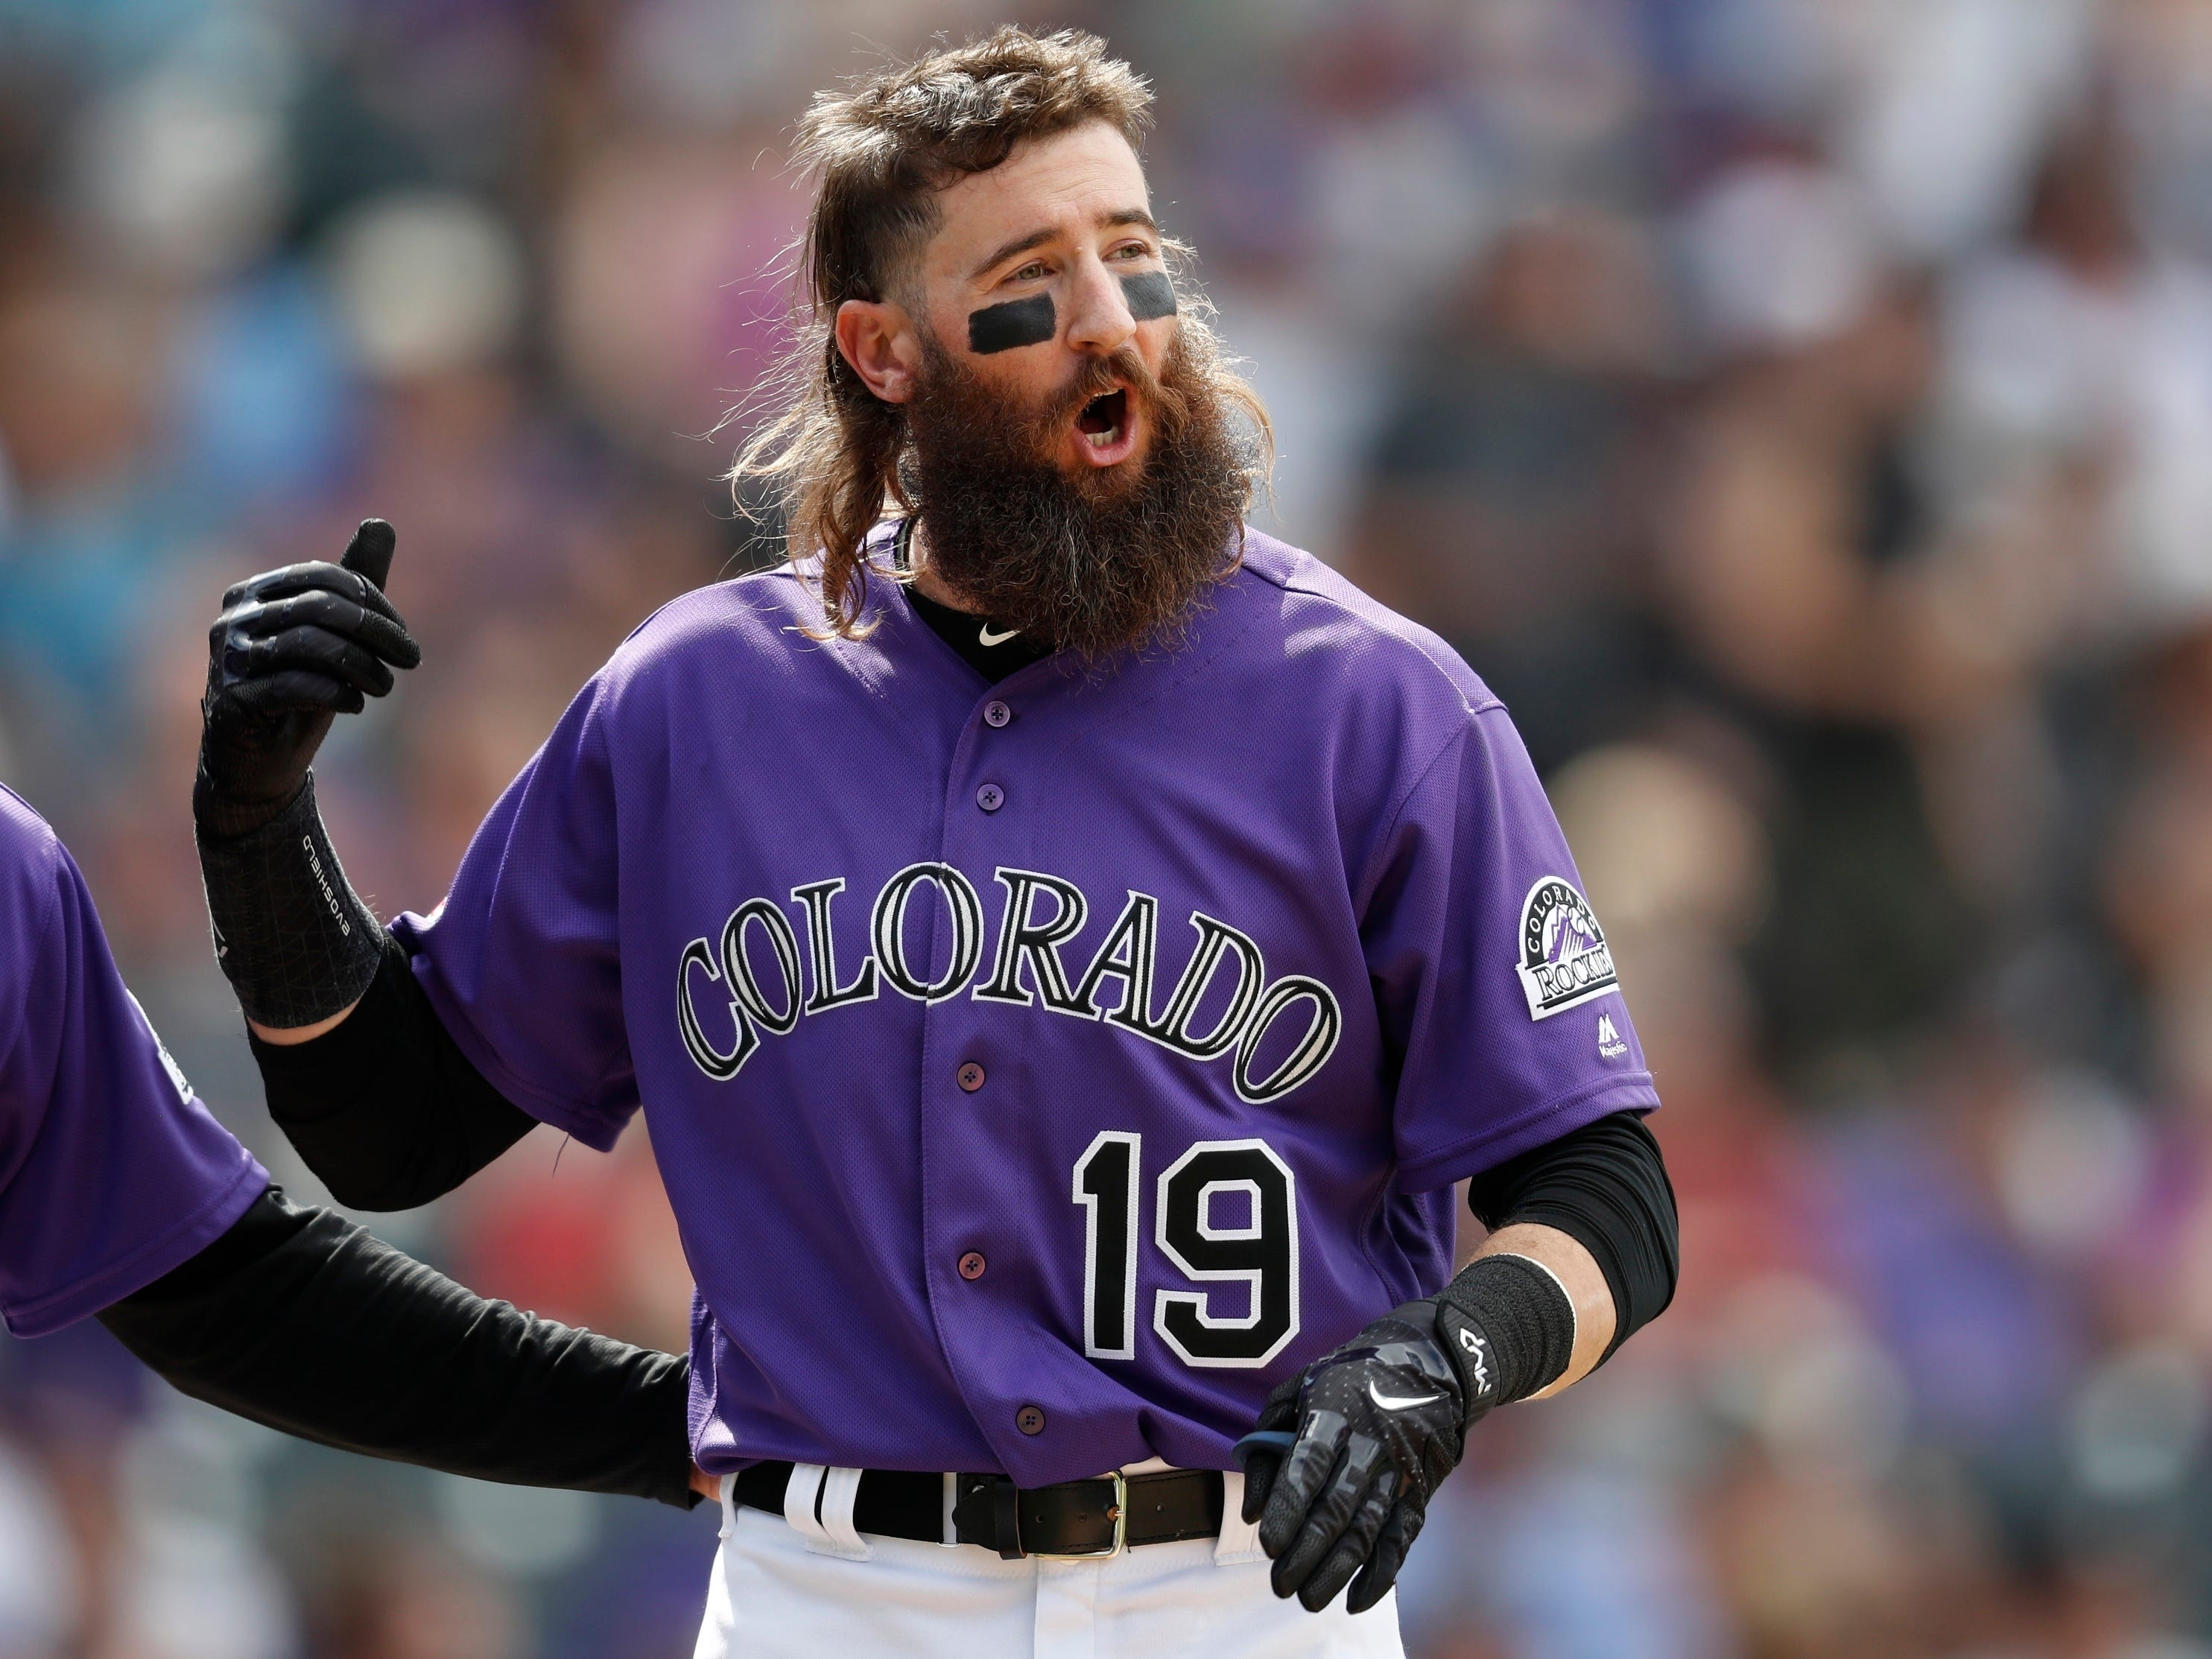 Colorado Rockies center fielder Charlie Blackmon argues with first base umpire Scott Barry after he ruled that Blackmon's ground ball was fair--not foul--and was counted as the final out in the seventh inning of a baseball game against the Arizona Diamondbacks Sunday, May 5, 2019, in Denver. (AP Photo/David Zalubowski)